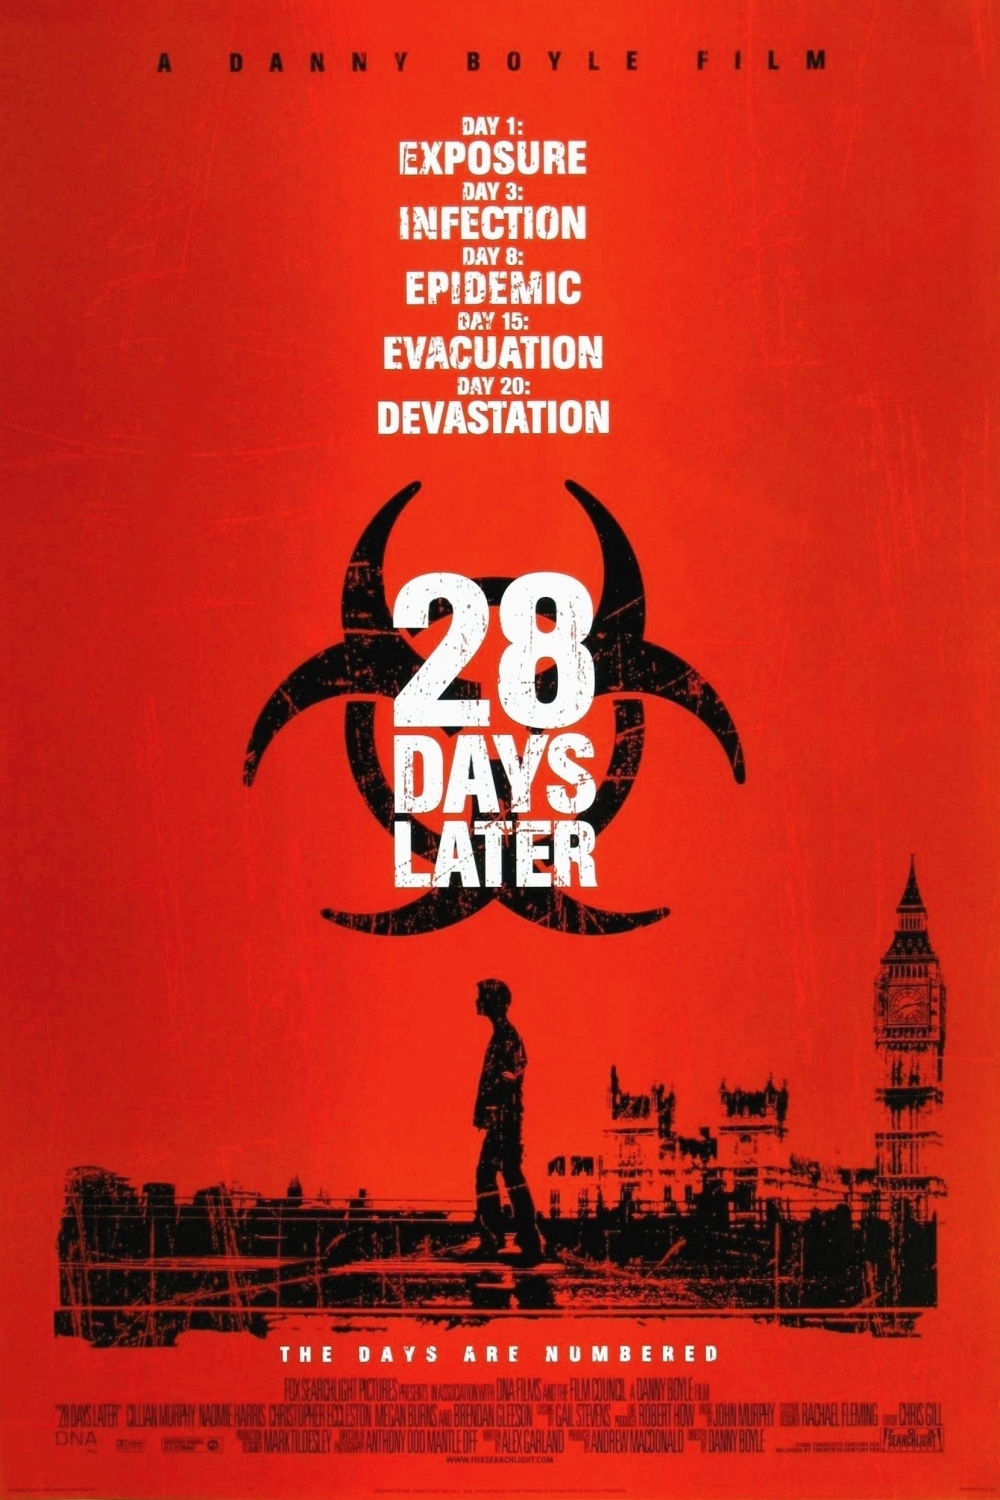 28 days later 28 days later is a 2002 british horror film directed by danny boyle set in present day england, the story depicts the breakdown of society following the accidental release of a virus known as &quotrage&quot (which renders people mindlessly violent) and focuses upon the struggle of four survivors to.